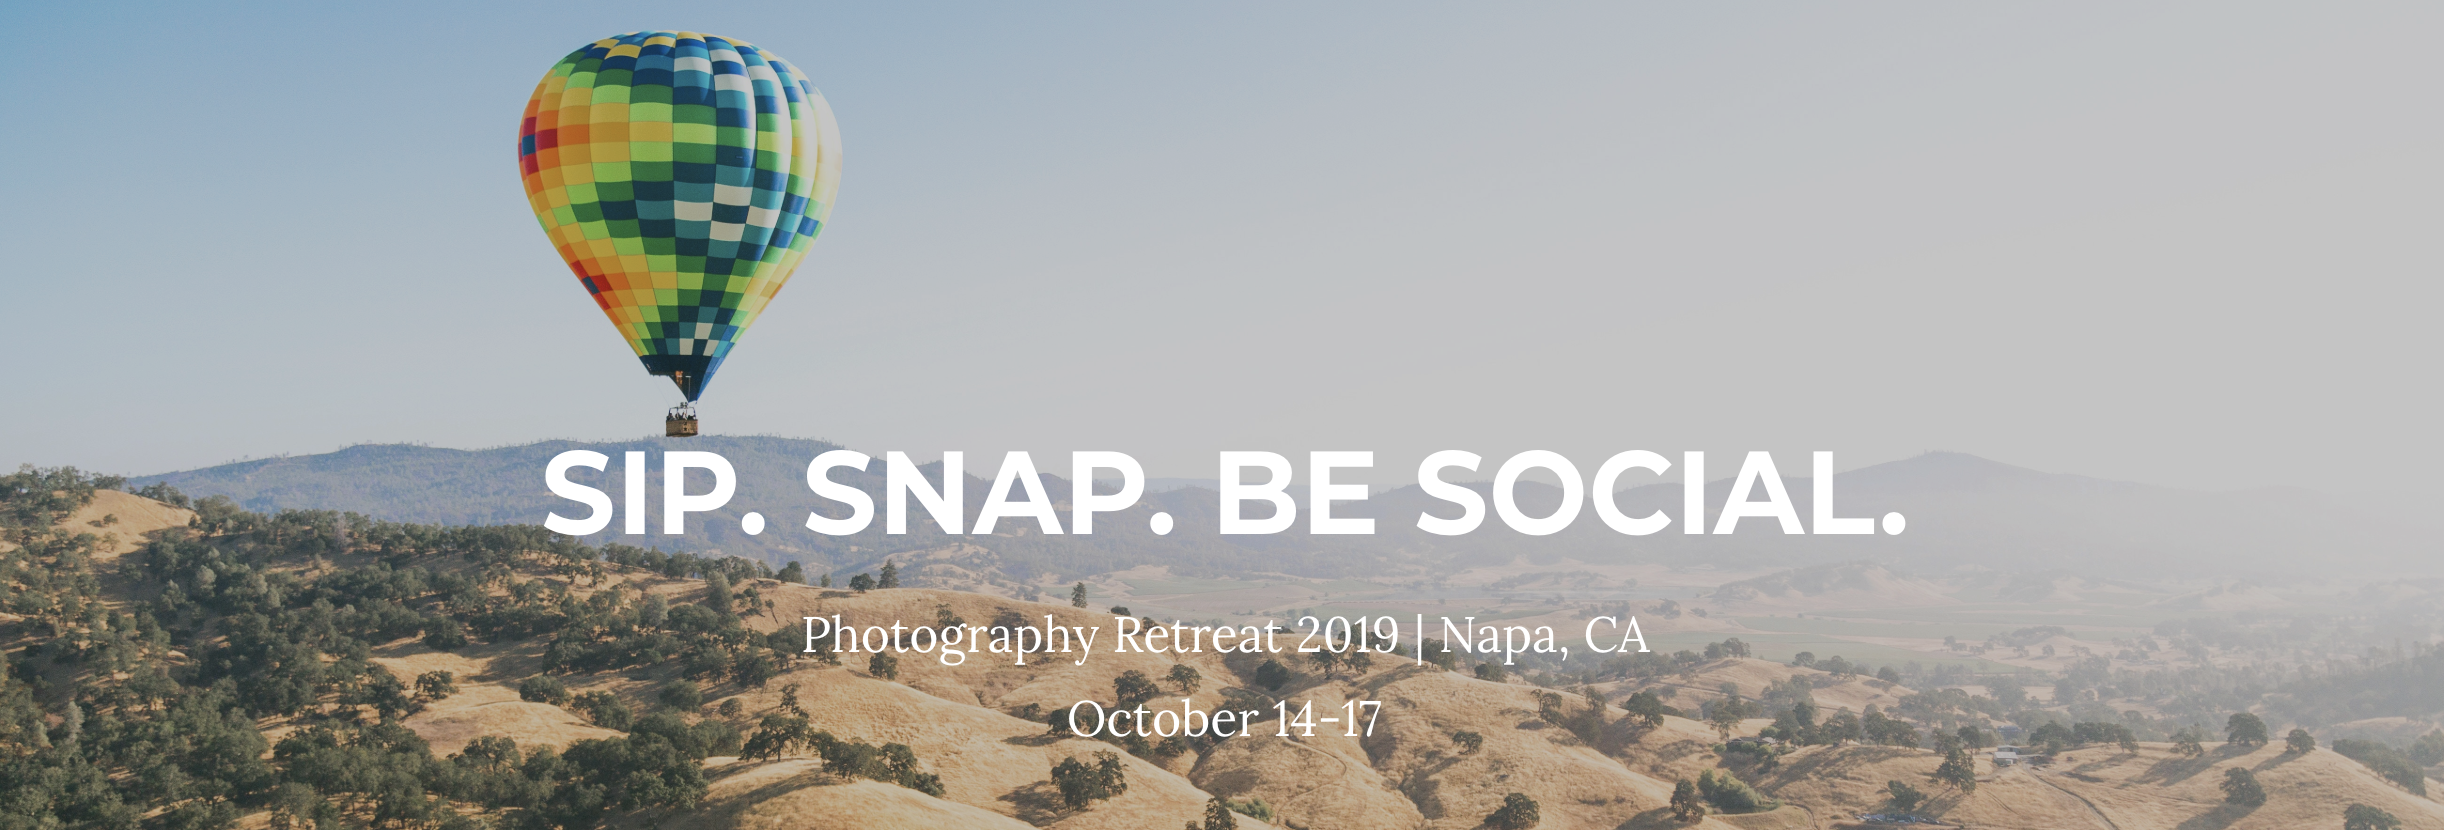 napa-photography-workshop.png